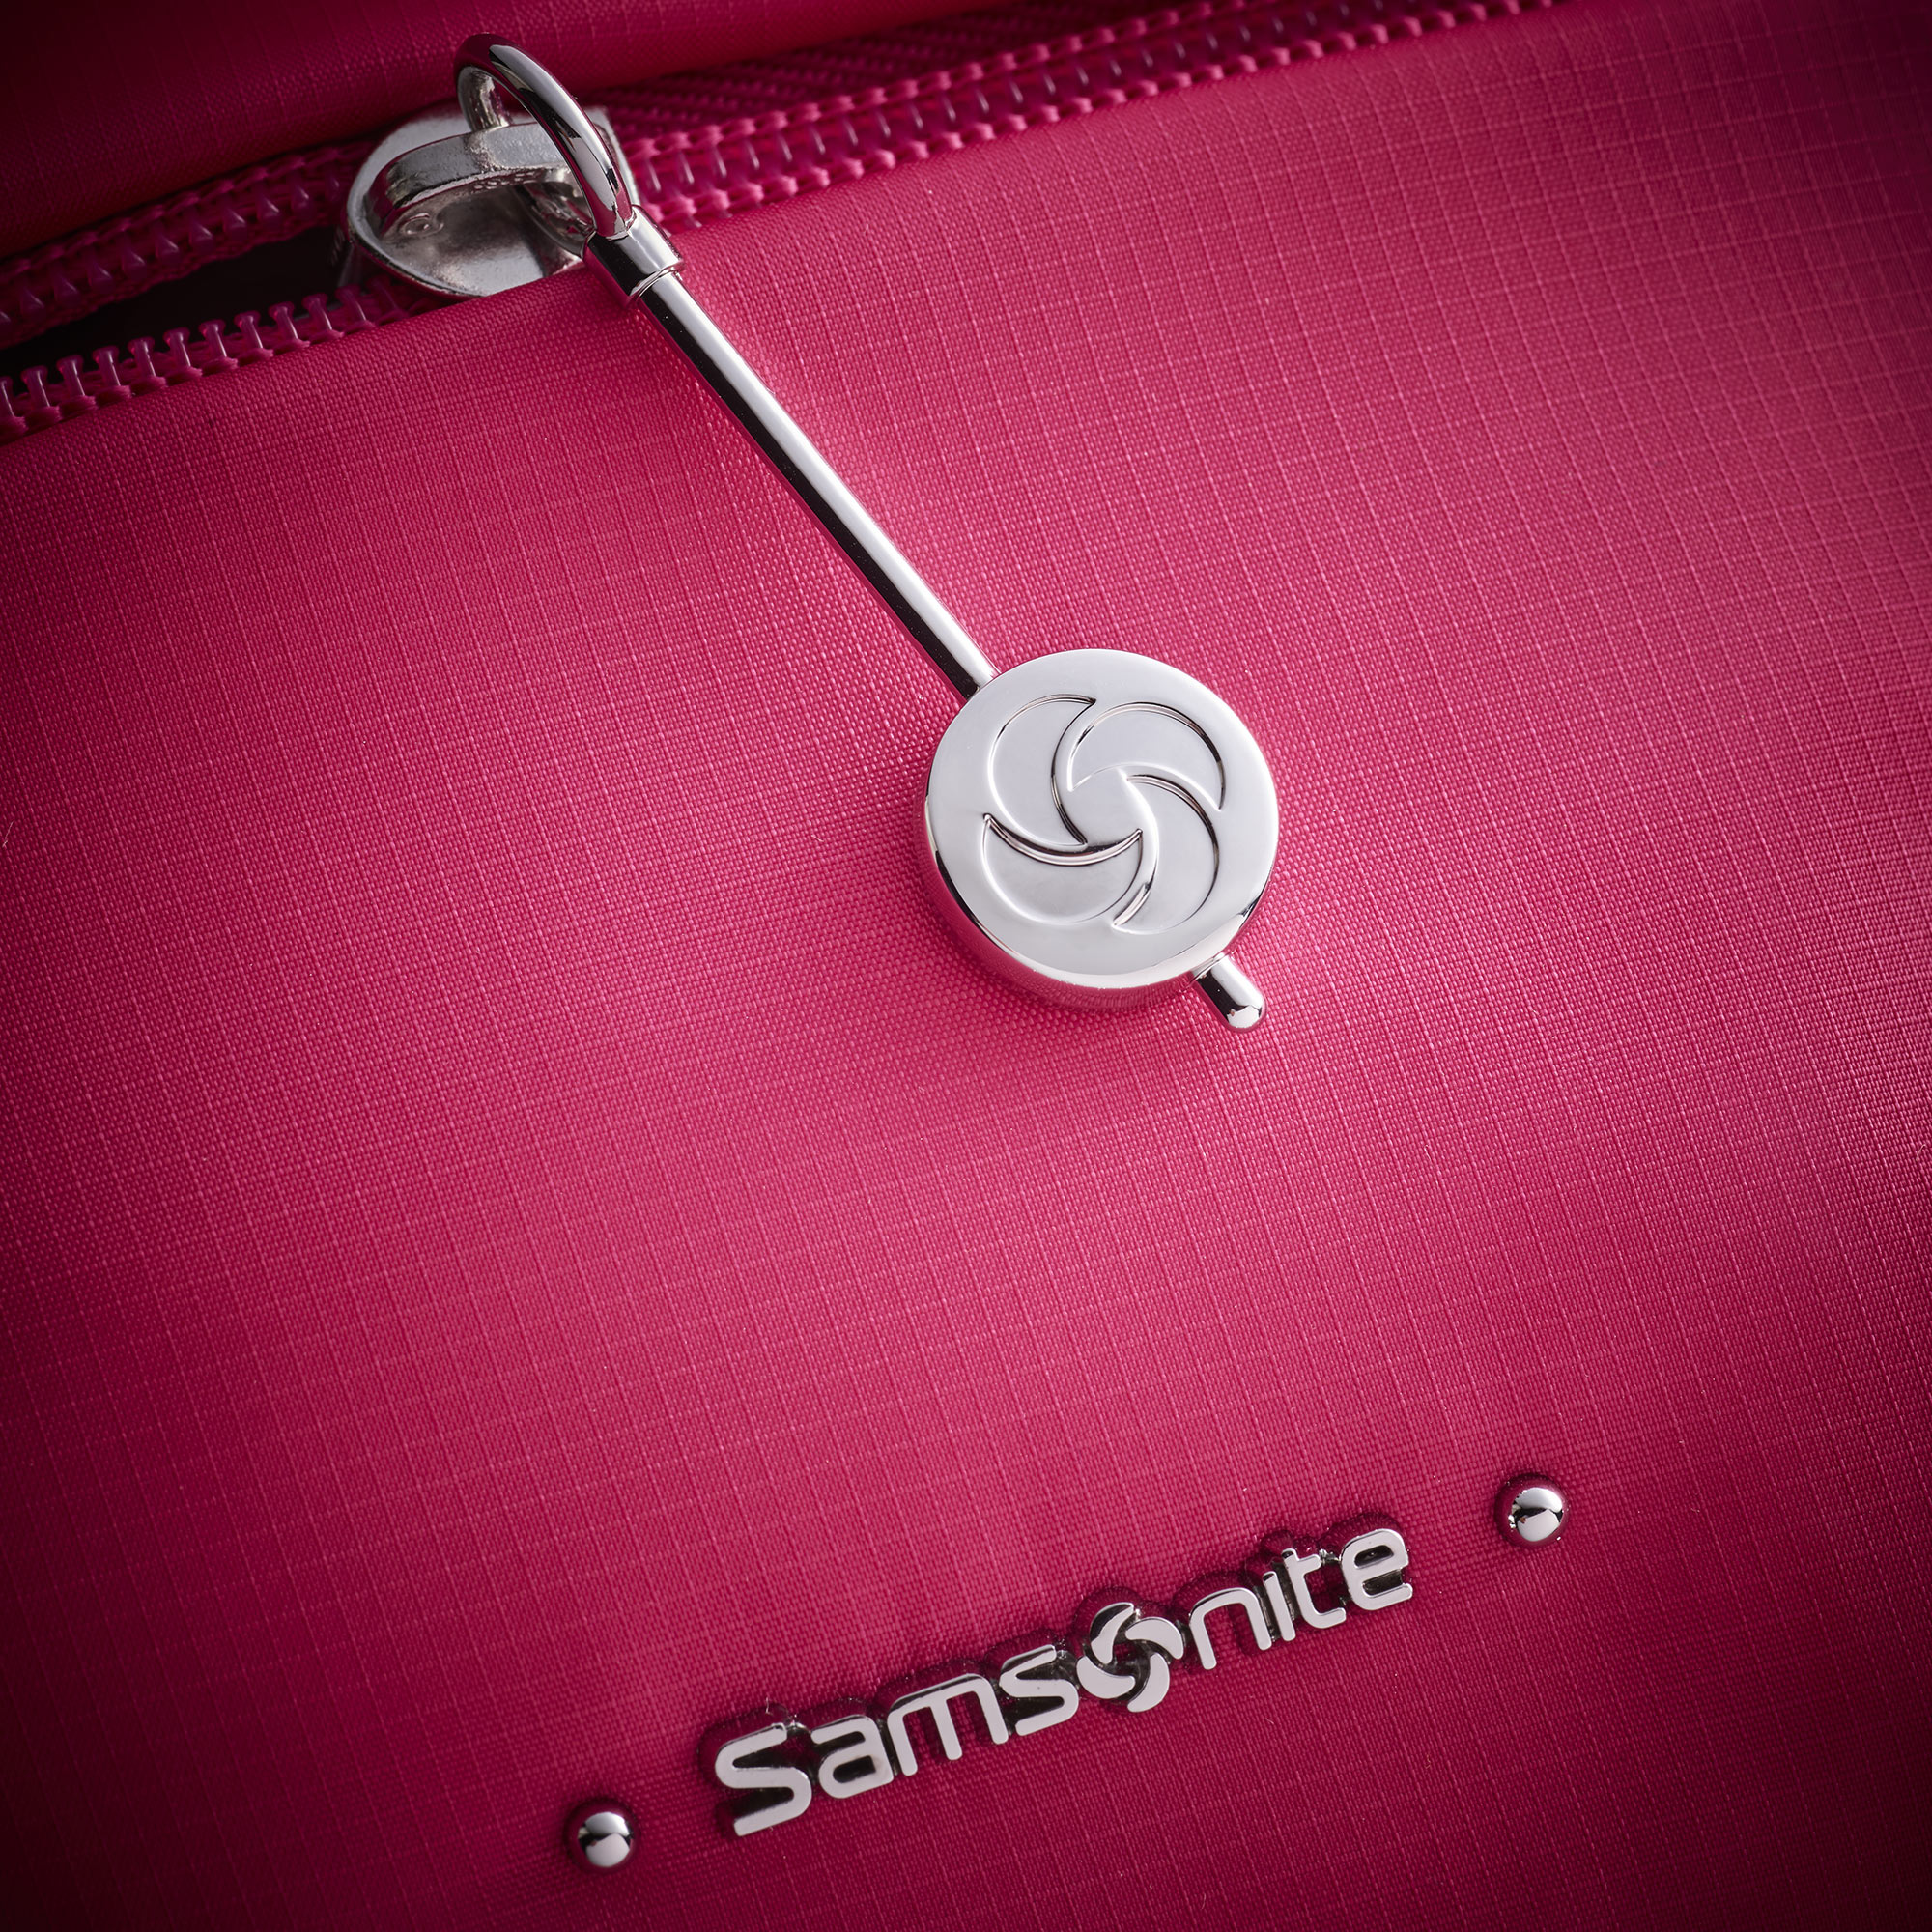 Red Bag Still Life Shot for Samsonite by Fotografando